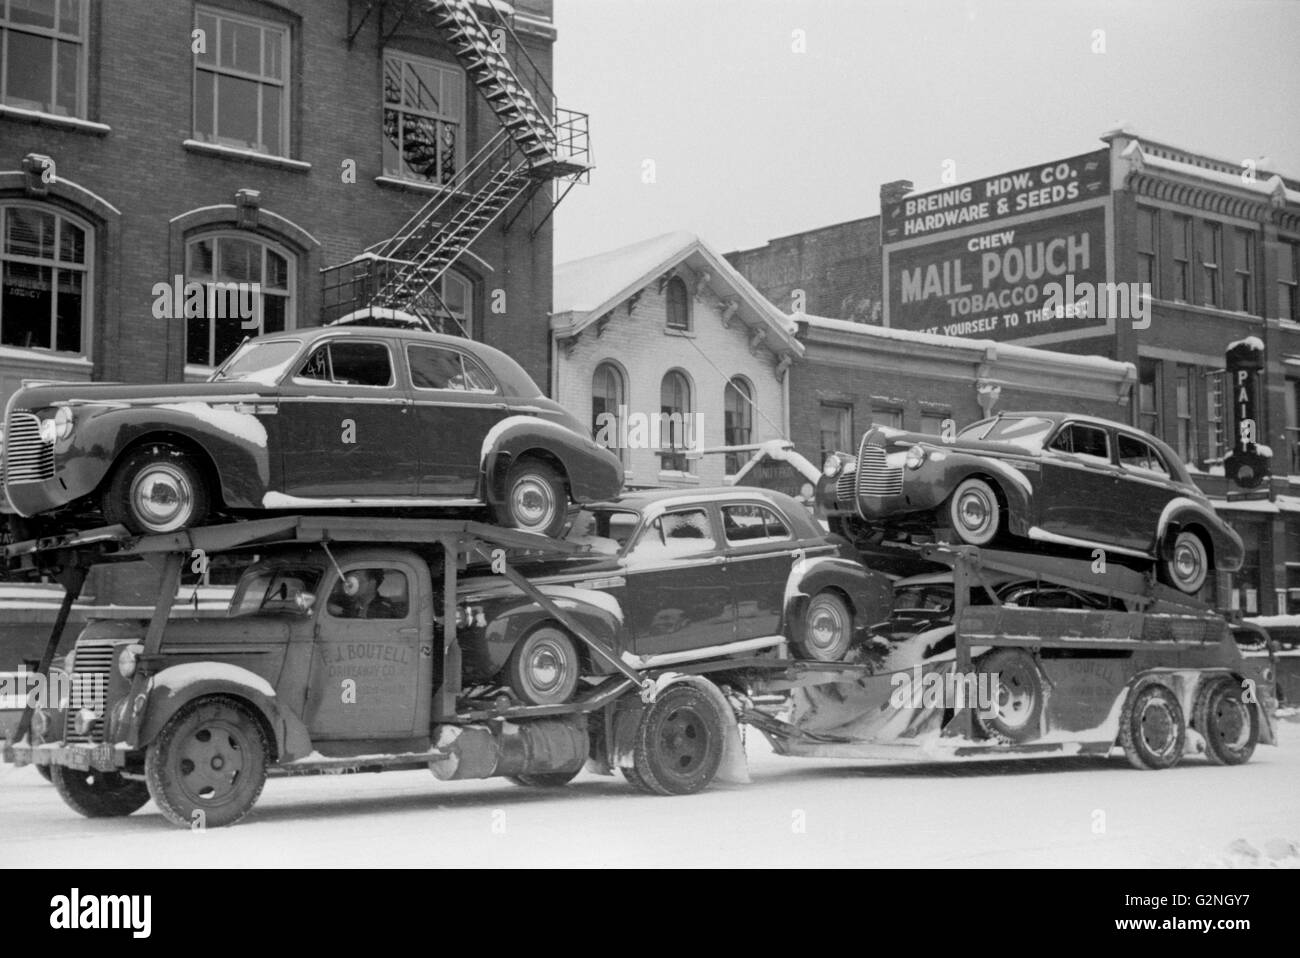 Auto Transport, Chillicothe, Ohio, USA, Arthur Rothstein for Farm Security Administration (FSA), February 1940 - Stock Image